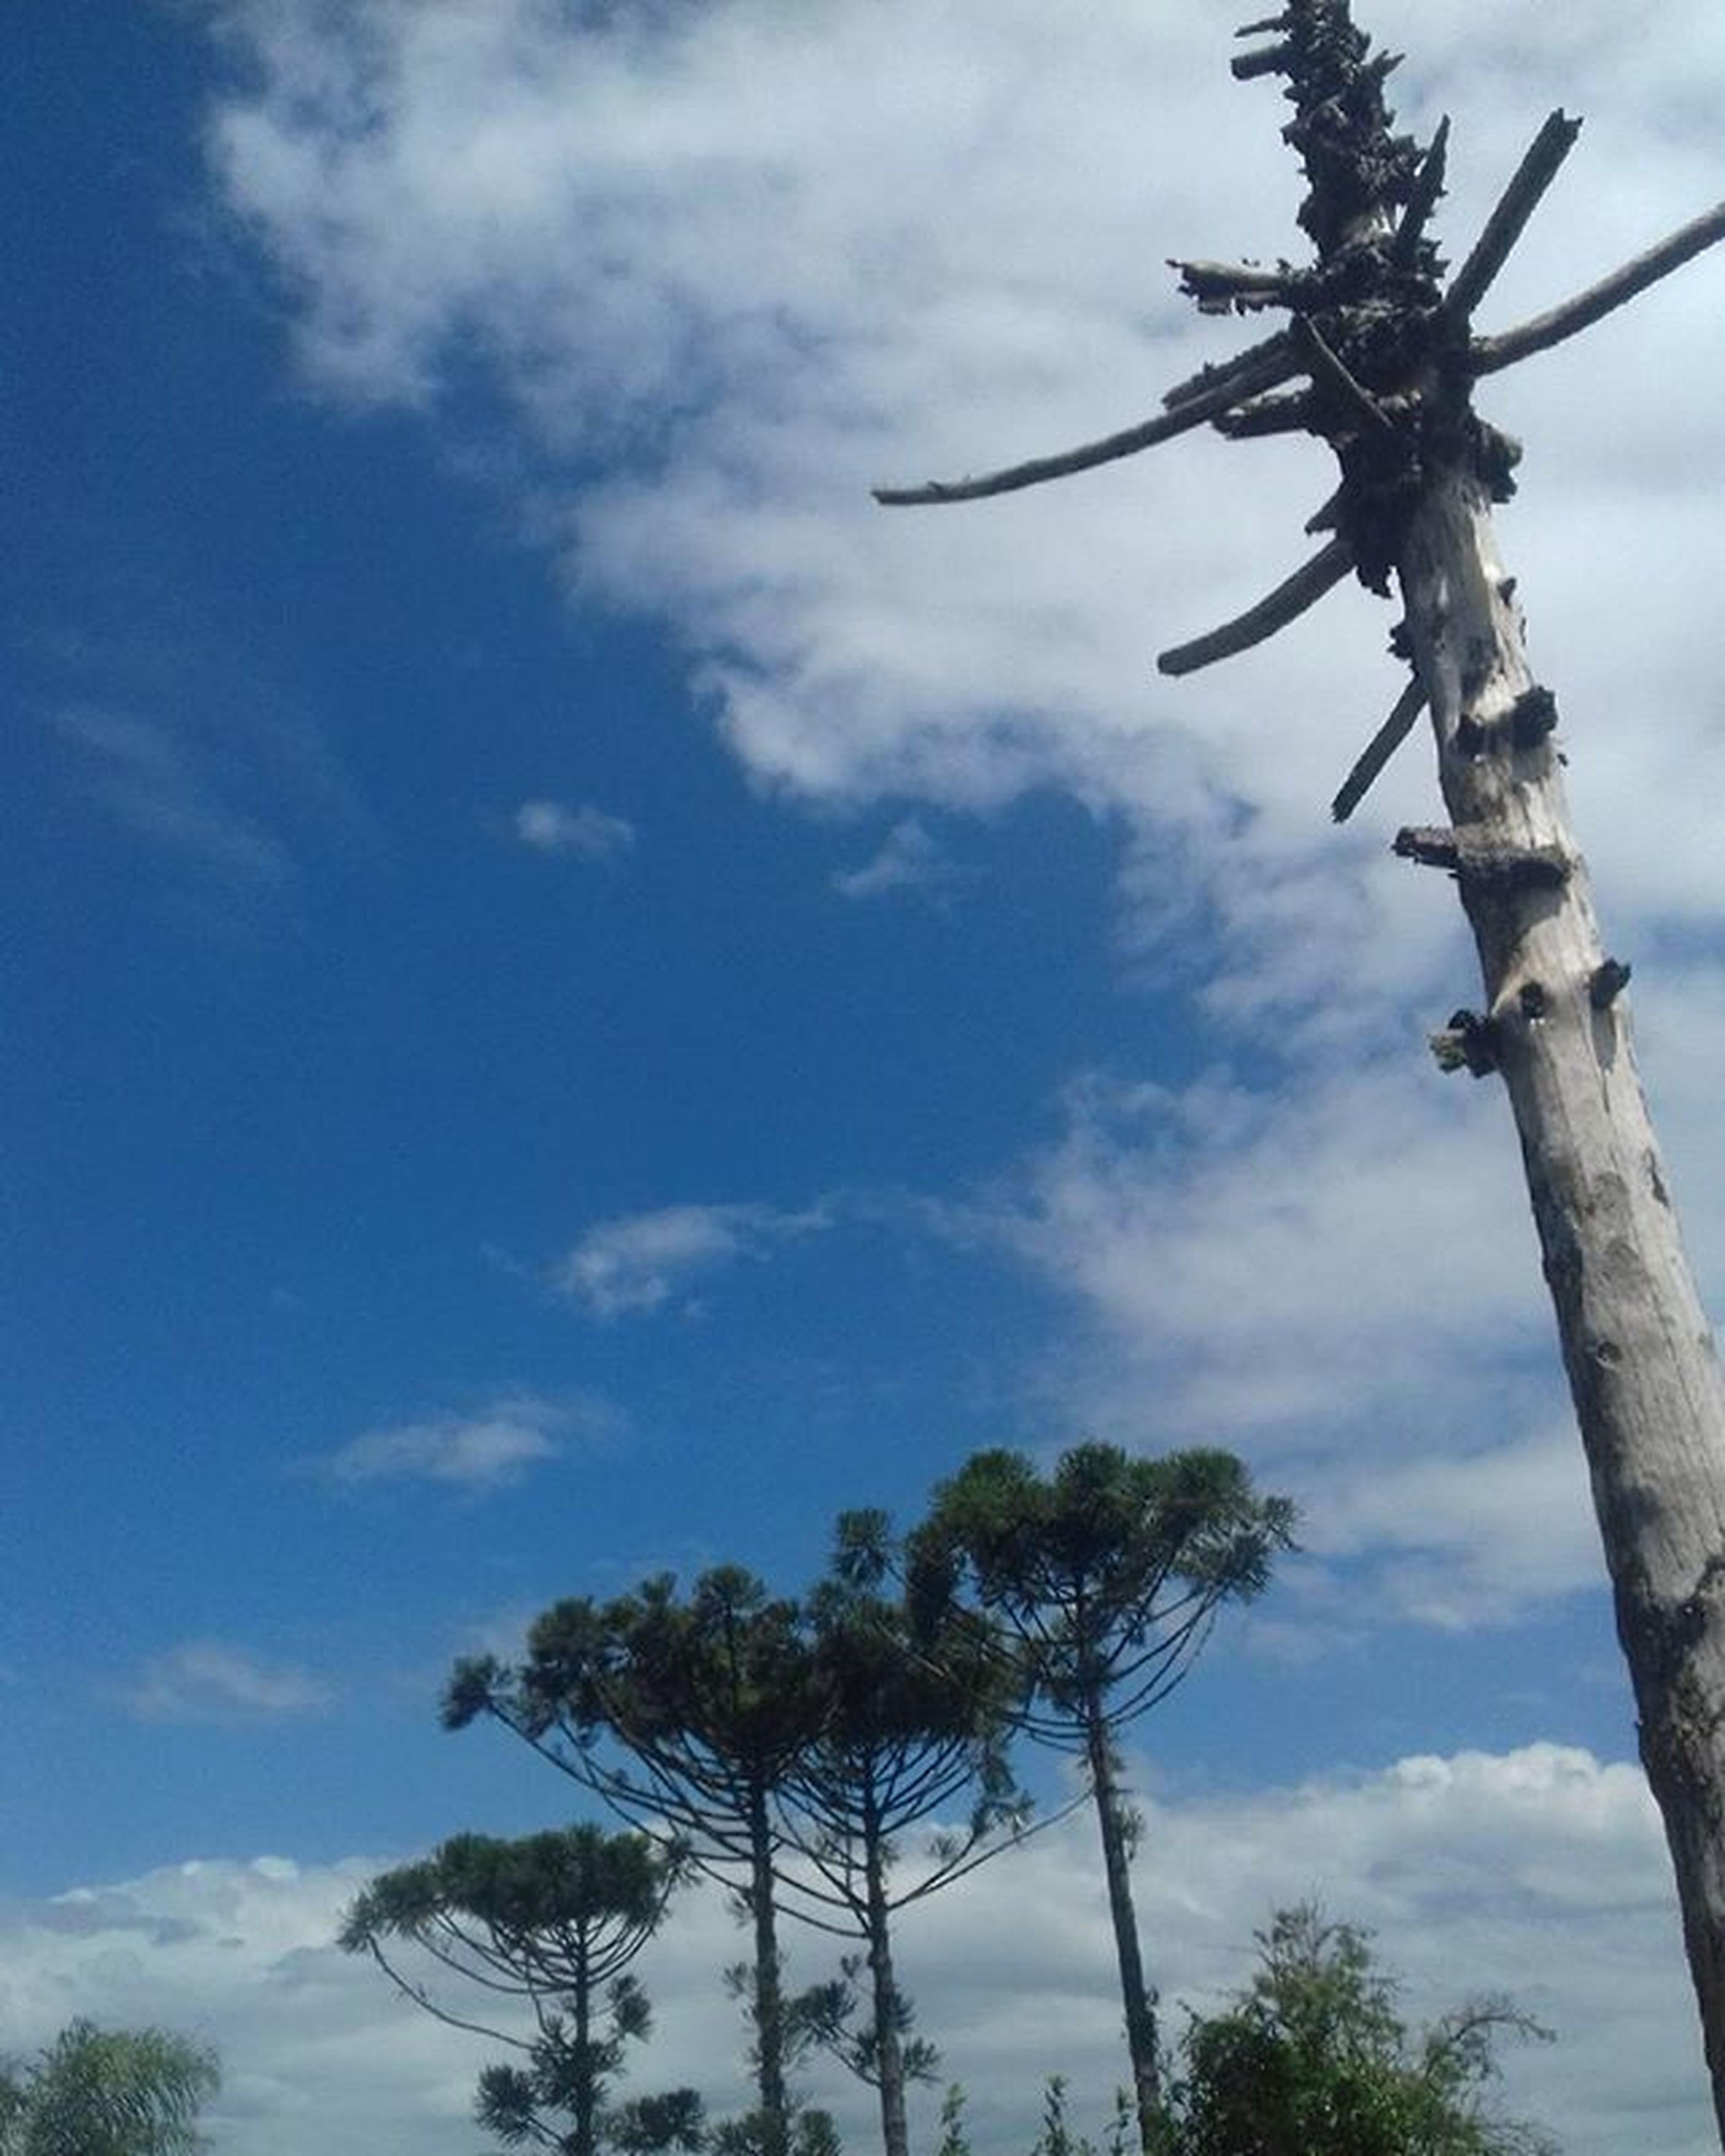 low angle view, sky, tree, cloud - sky, tranquility, nature, cloudy, growth, cloud, tree trunk, branch, day, beauty in nature, outdoors, tranquil scene, no people, scenics, palm tree, blue, bare tree